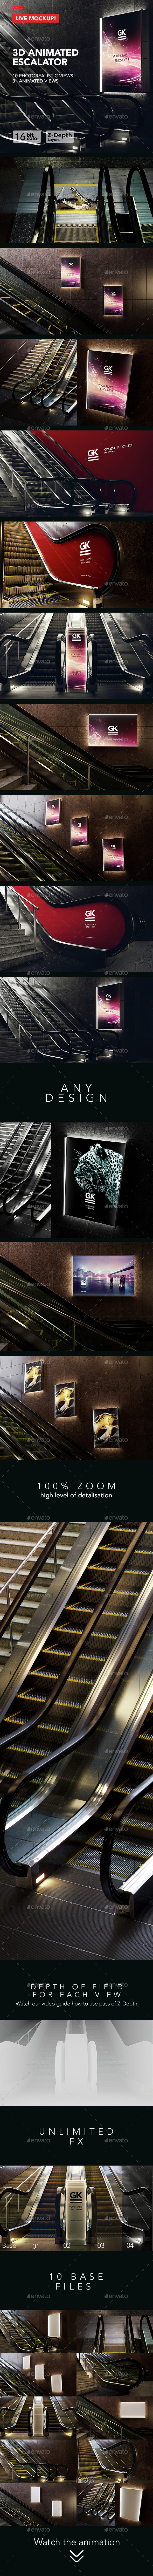 3D Animated Escalator / Lightbox Mockup - Miscellaneous Print